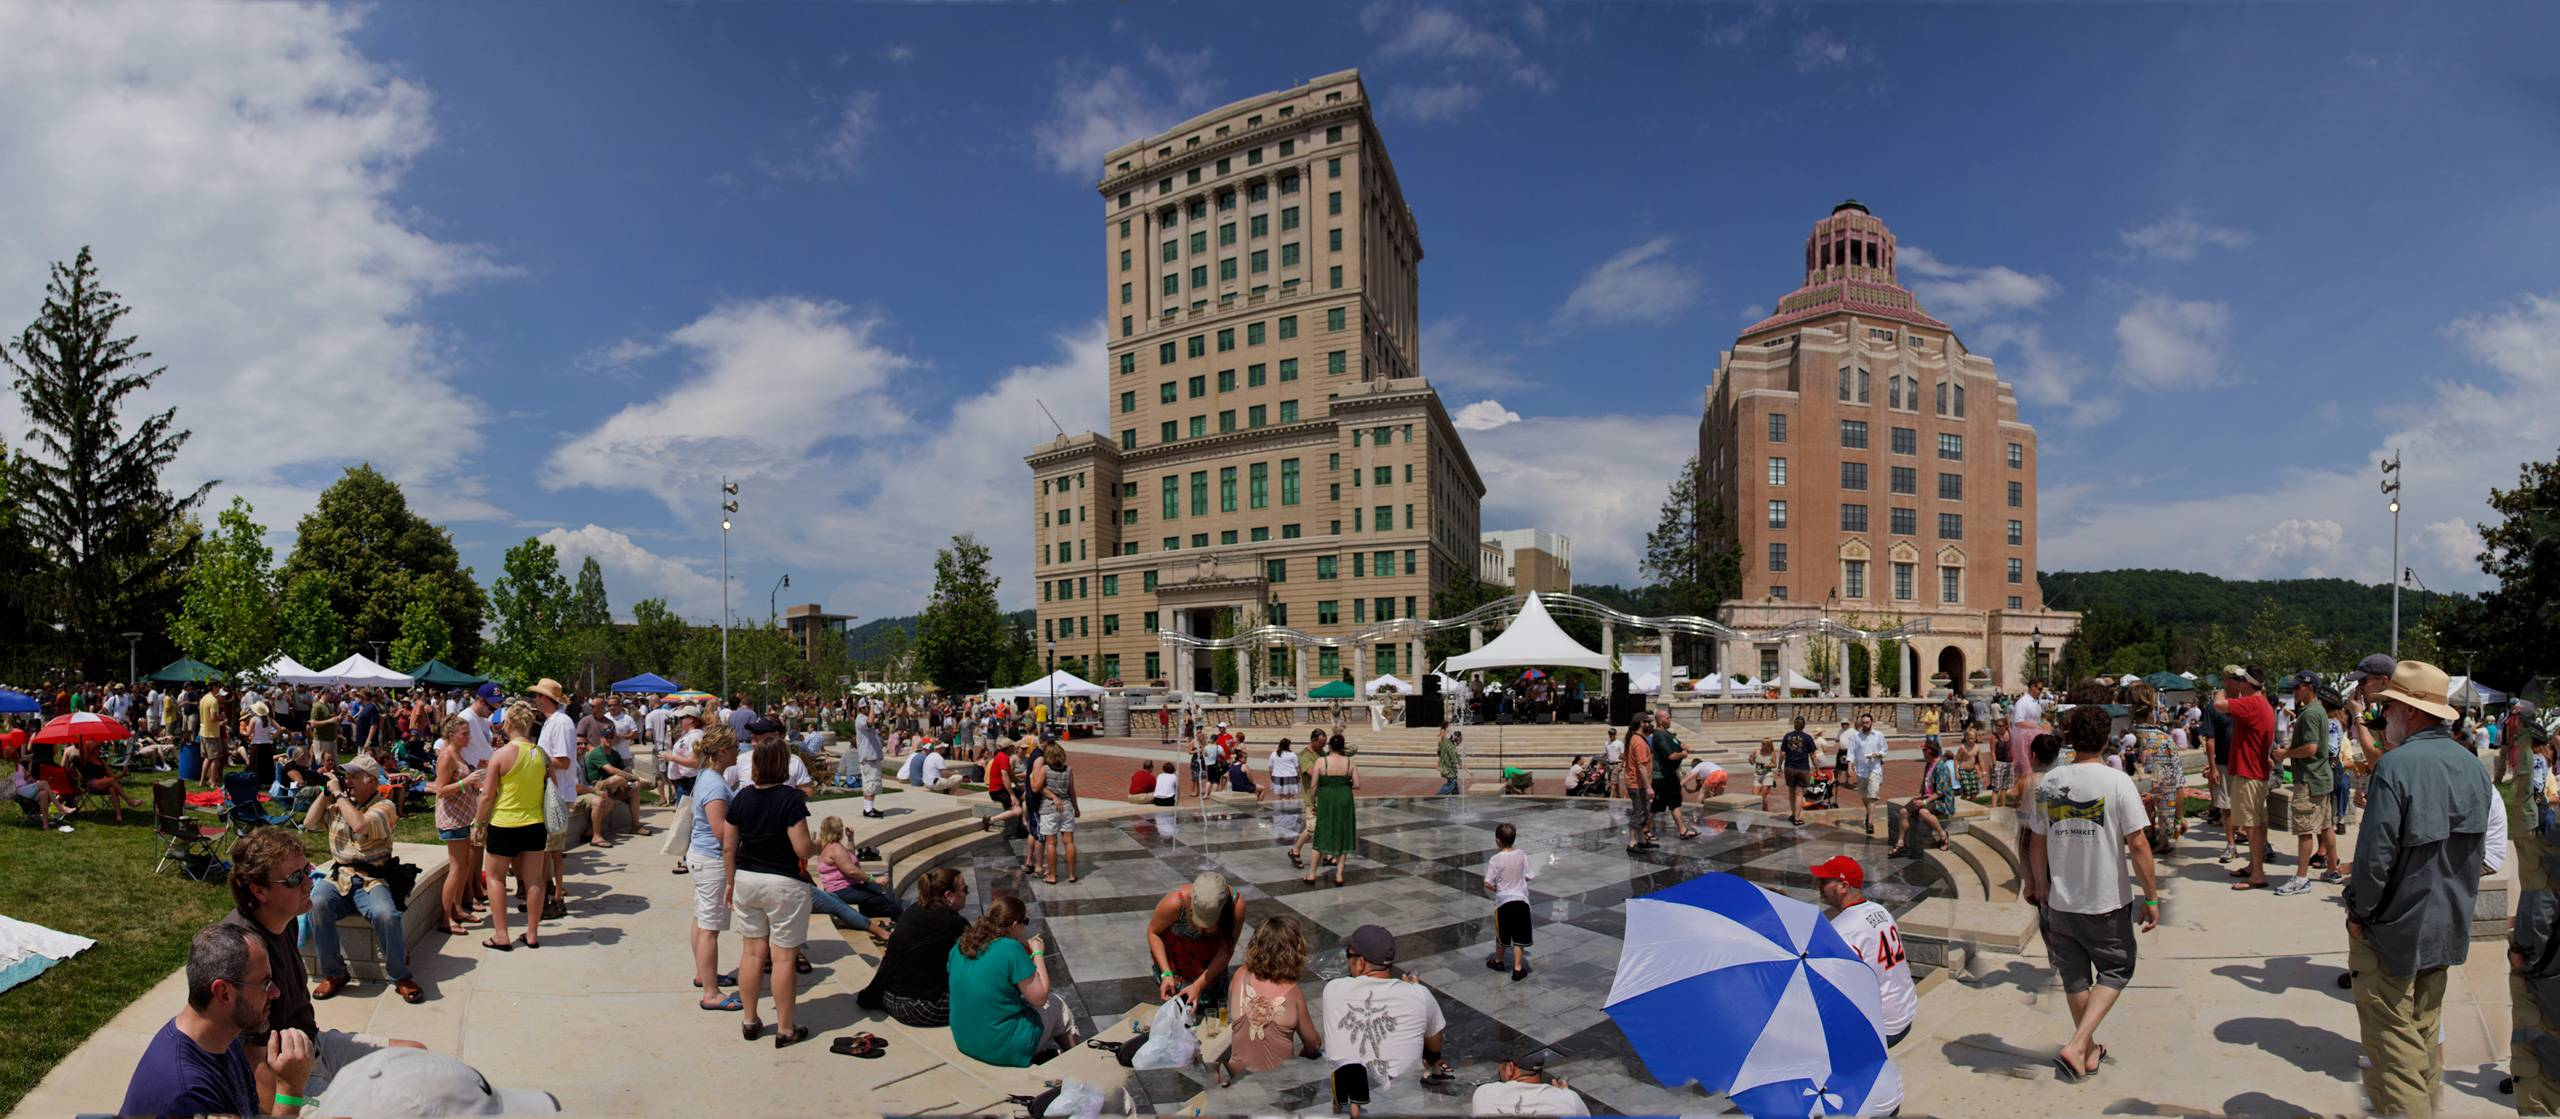 Especially on summer nights, people gather at Pack Square Park in Asheville, N.C., near the county courthouse, left, and City Hall on the right. The park is a popular place to stroll or hang out, with live music events on some summer Saturdays and an interactive water fountain.